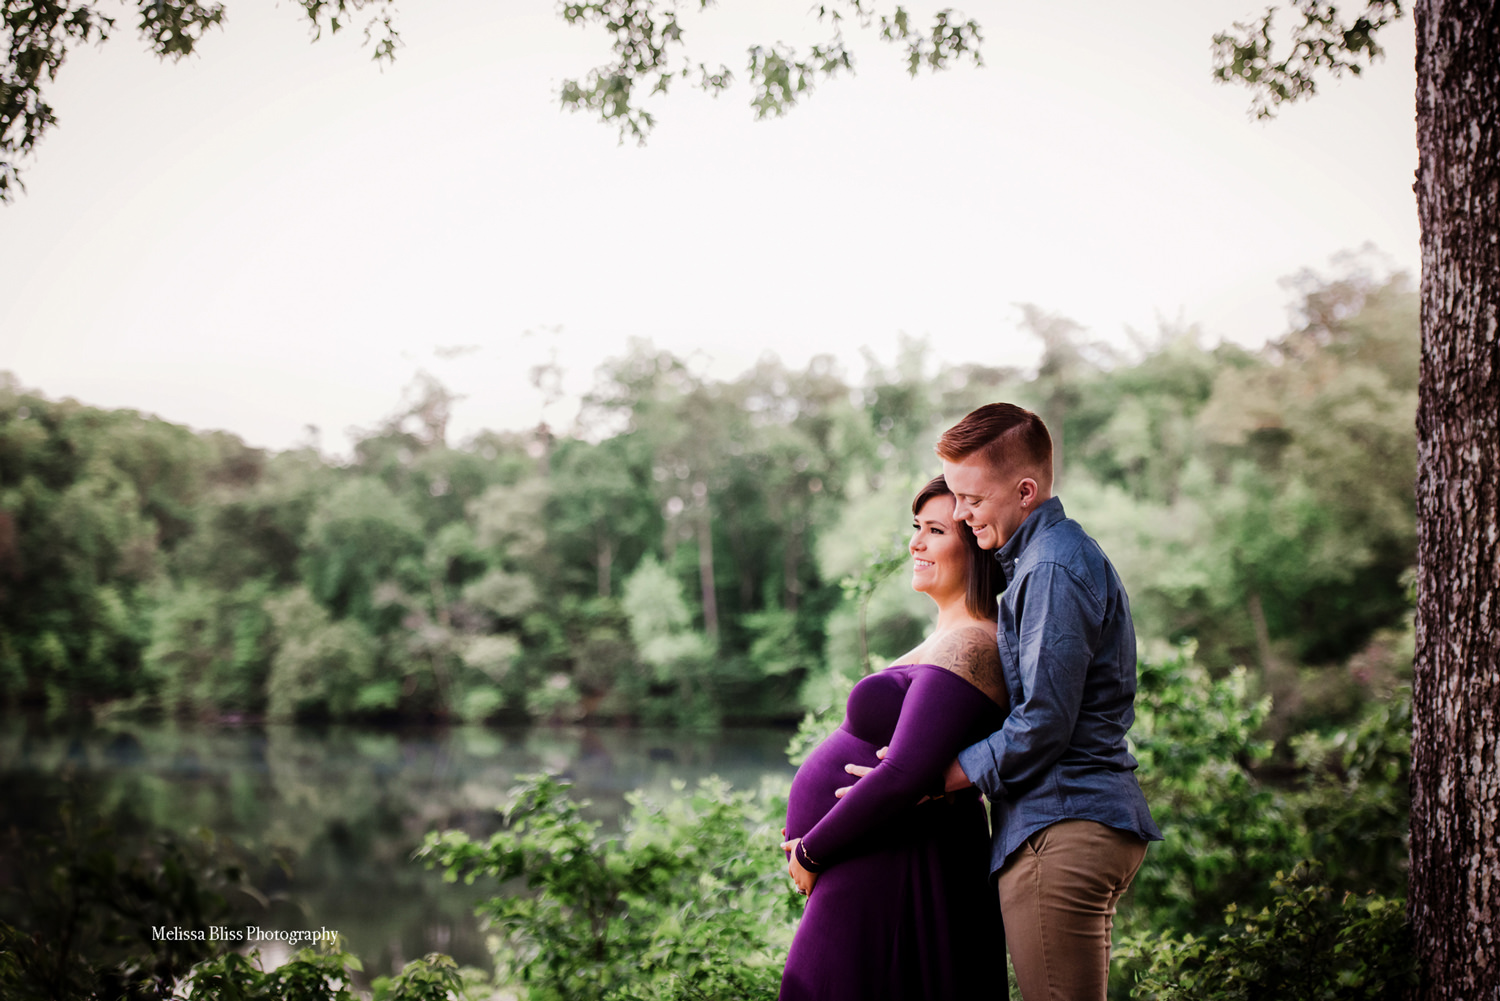 noland-trail-maternity-session-hampton-roads-maternithy-photographer-melissa-bliss-photography.jpg